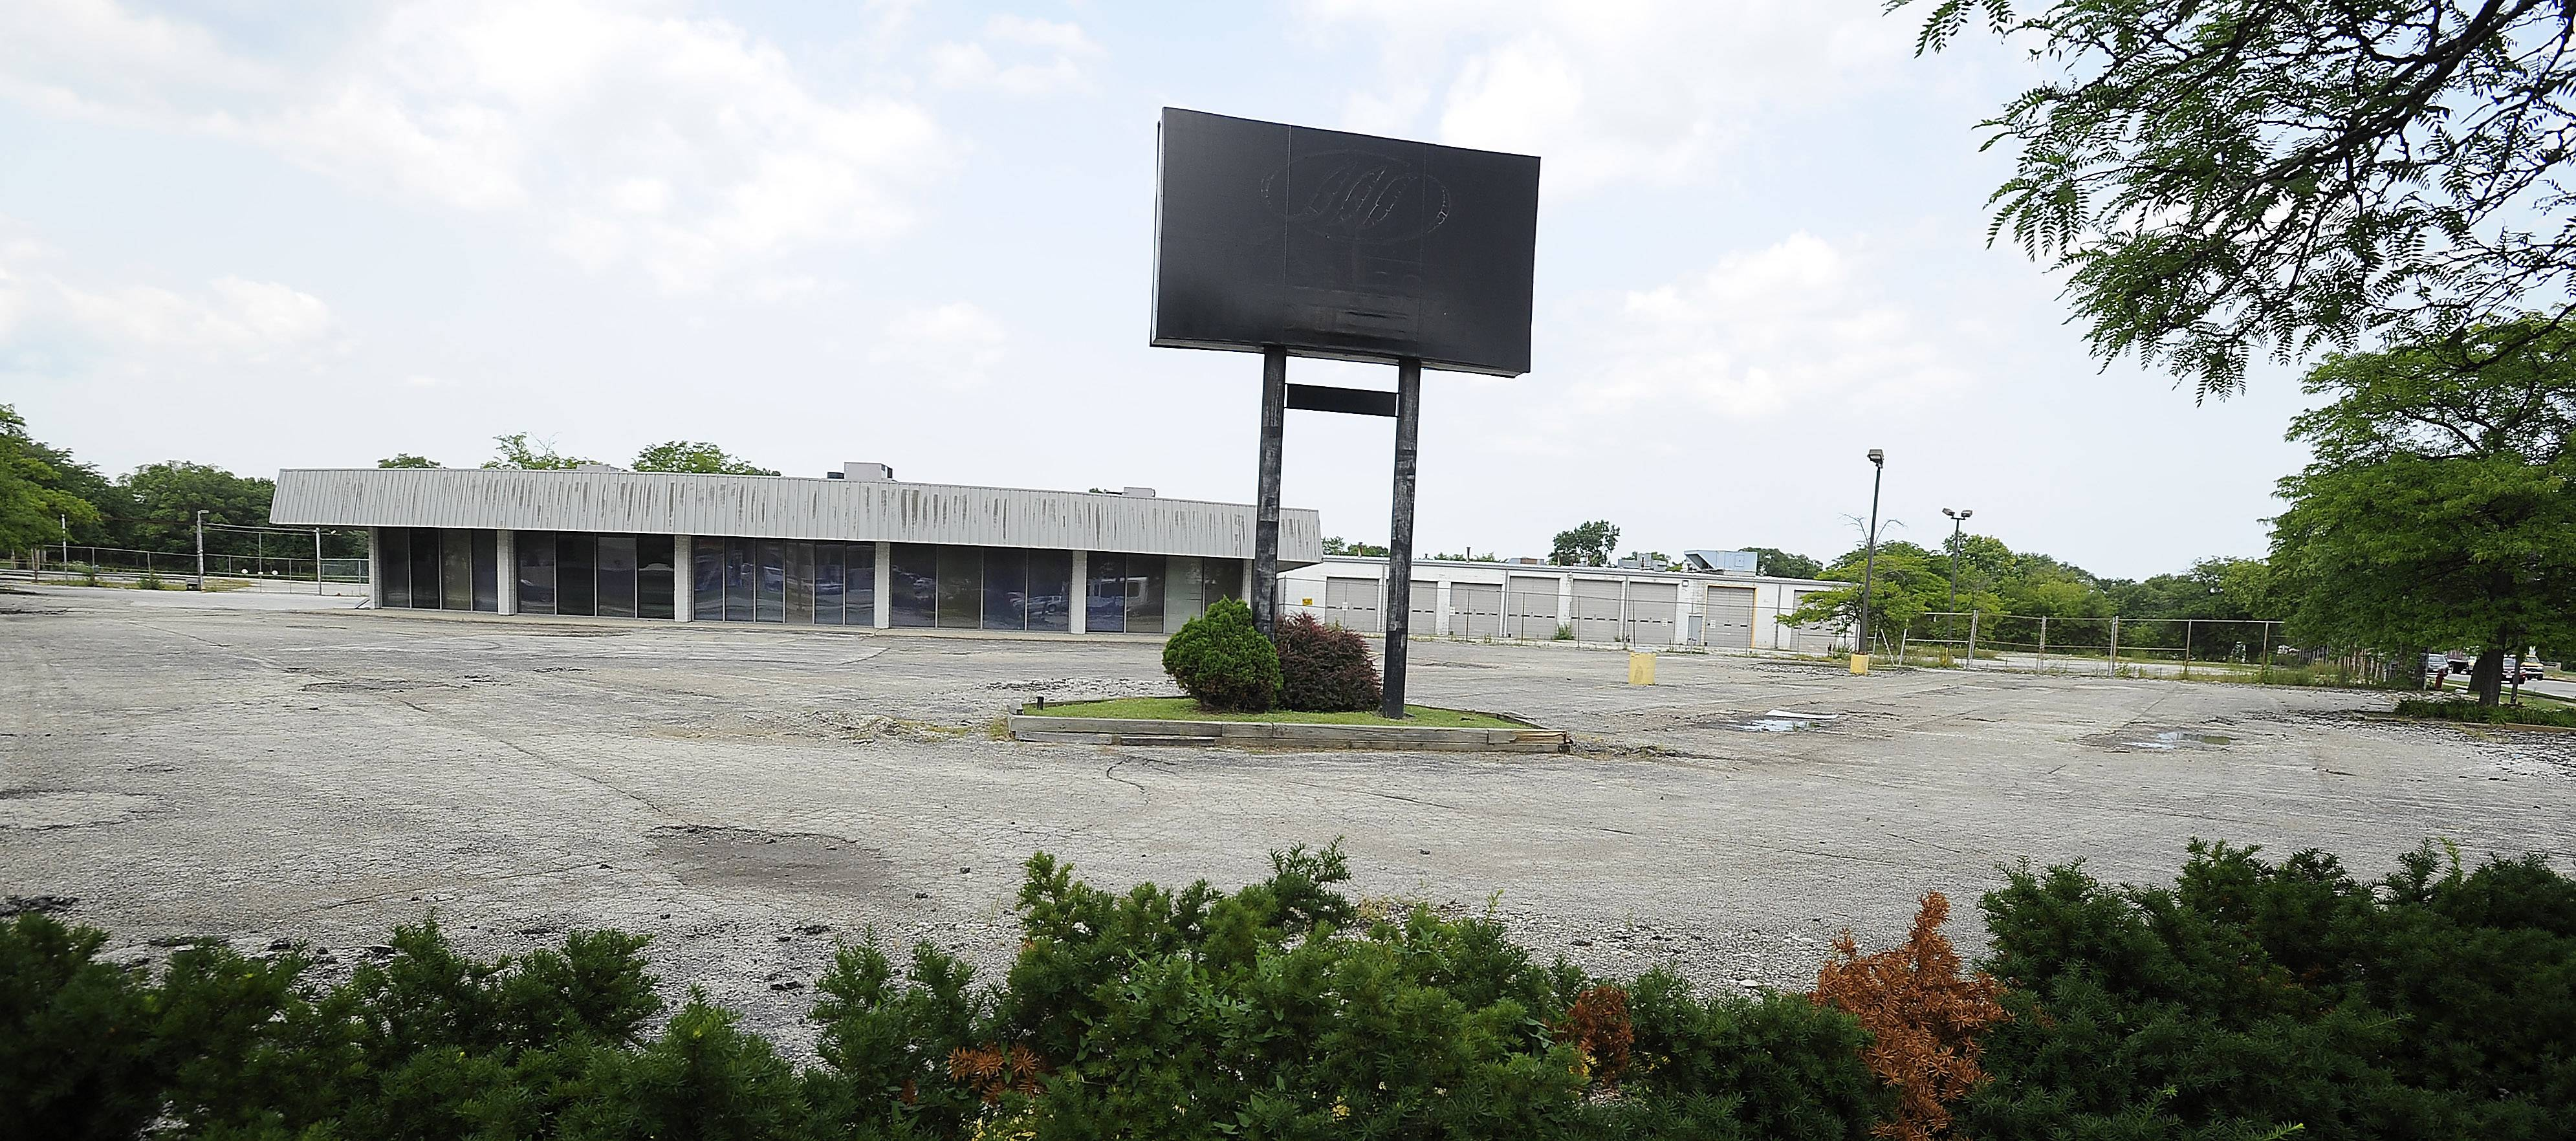 Des Plaines park board OKs giving land to Mariano's developer